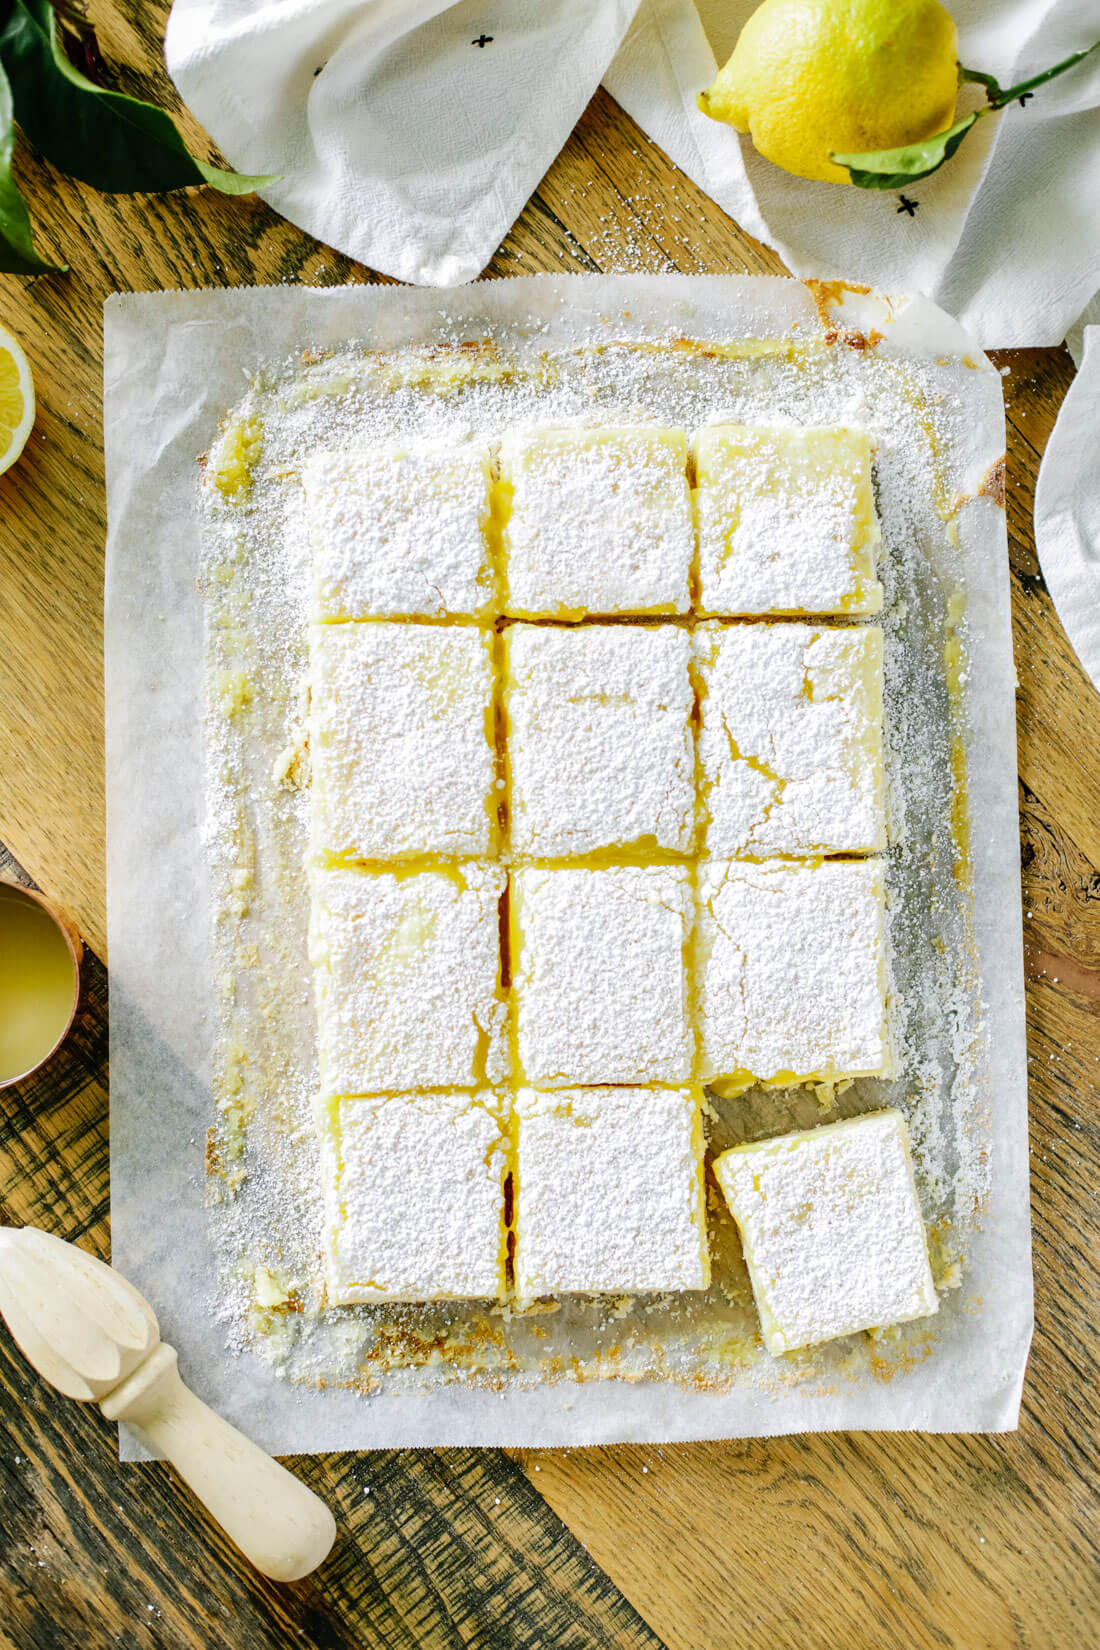 Lemon Bars - full sheet, cut into bars